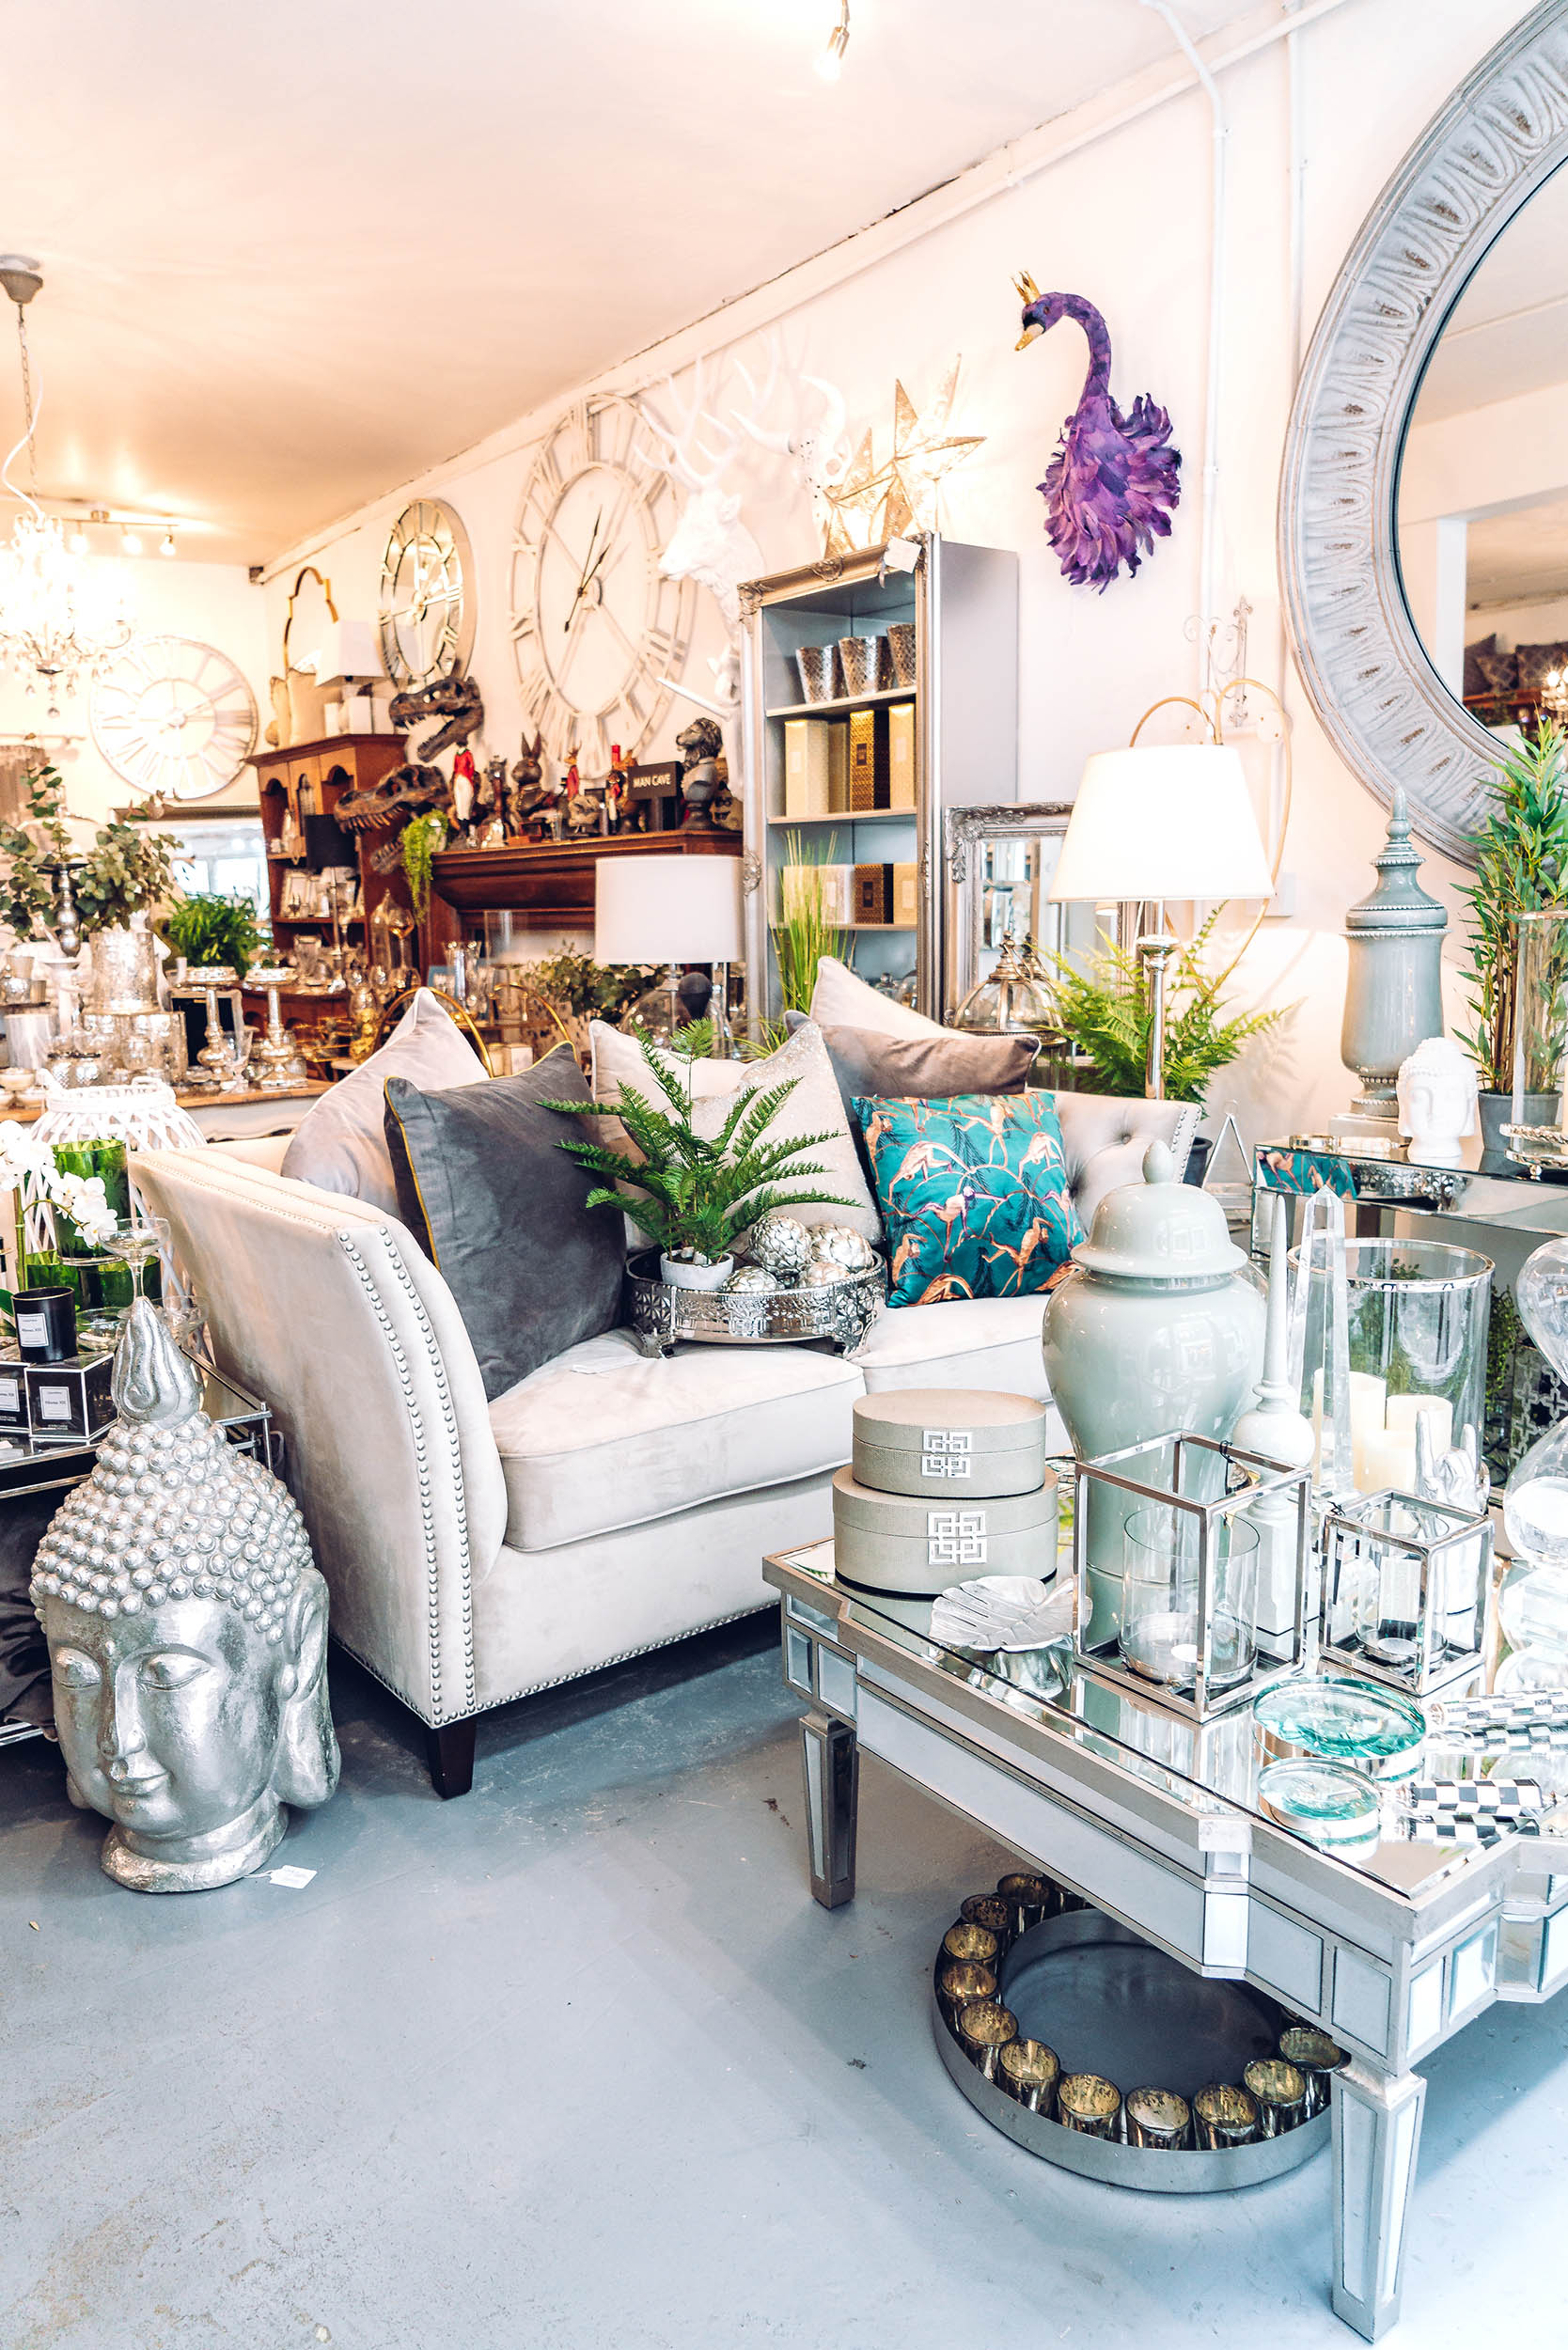 Dear Grace - Home Interior and Gifts - Colchester, Essex 10.jpg